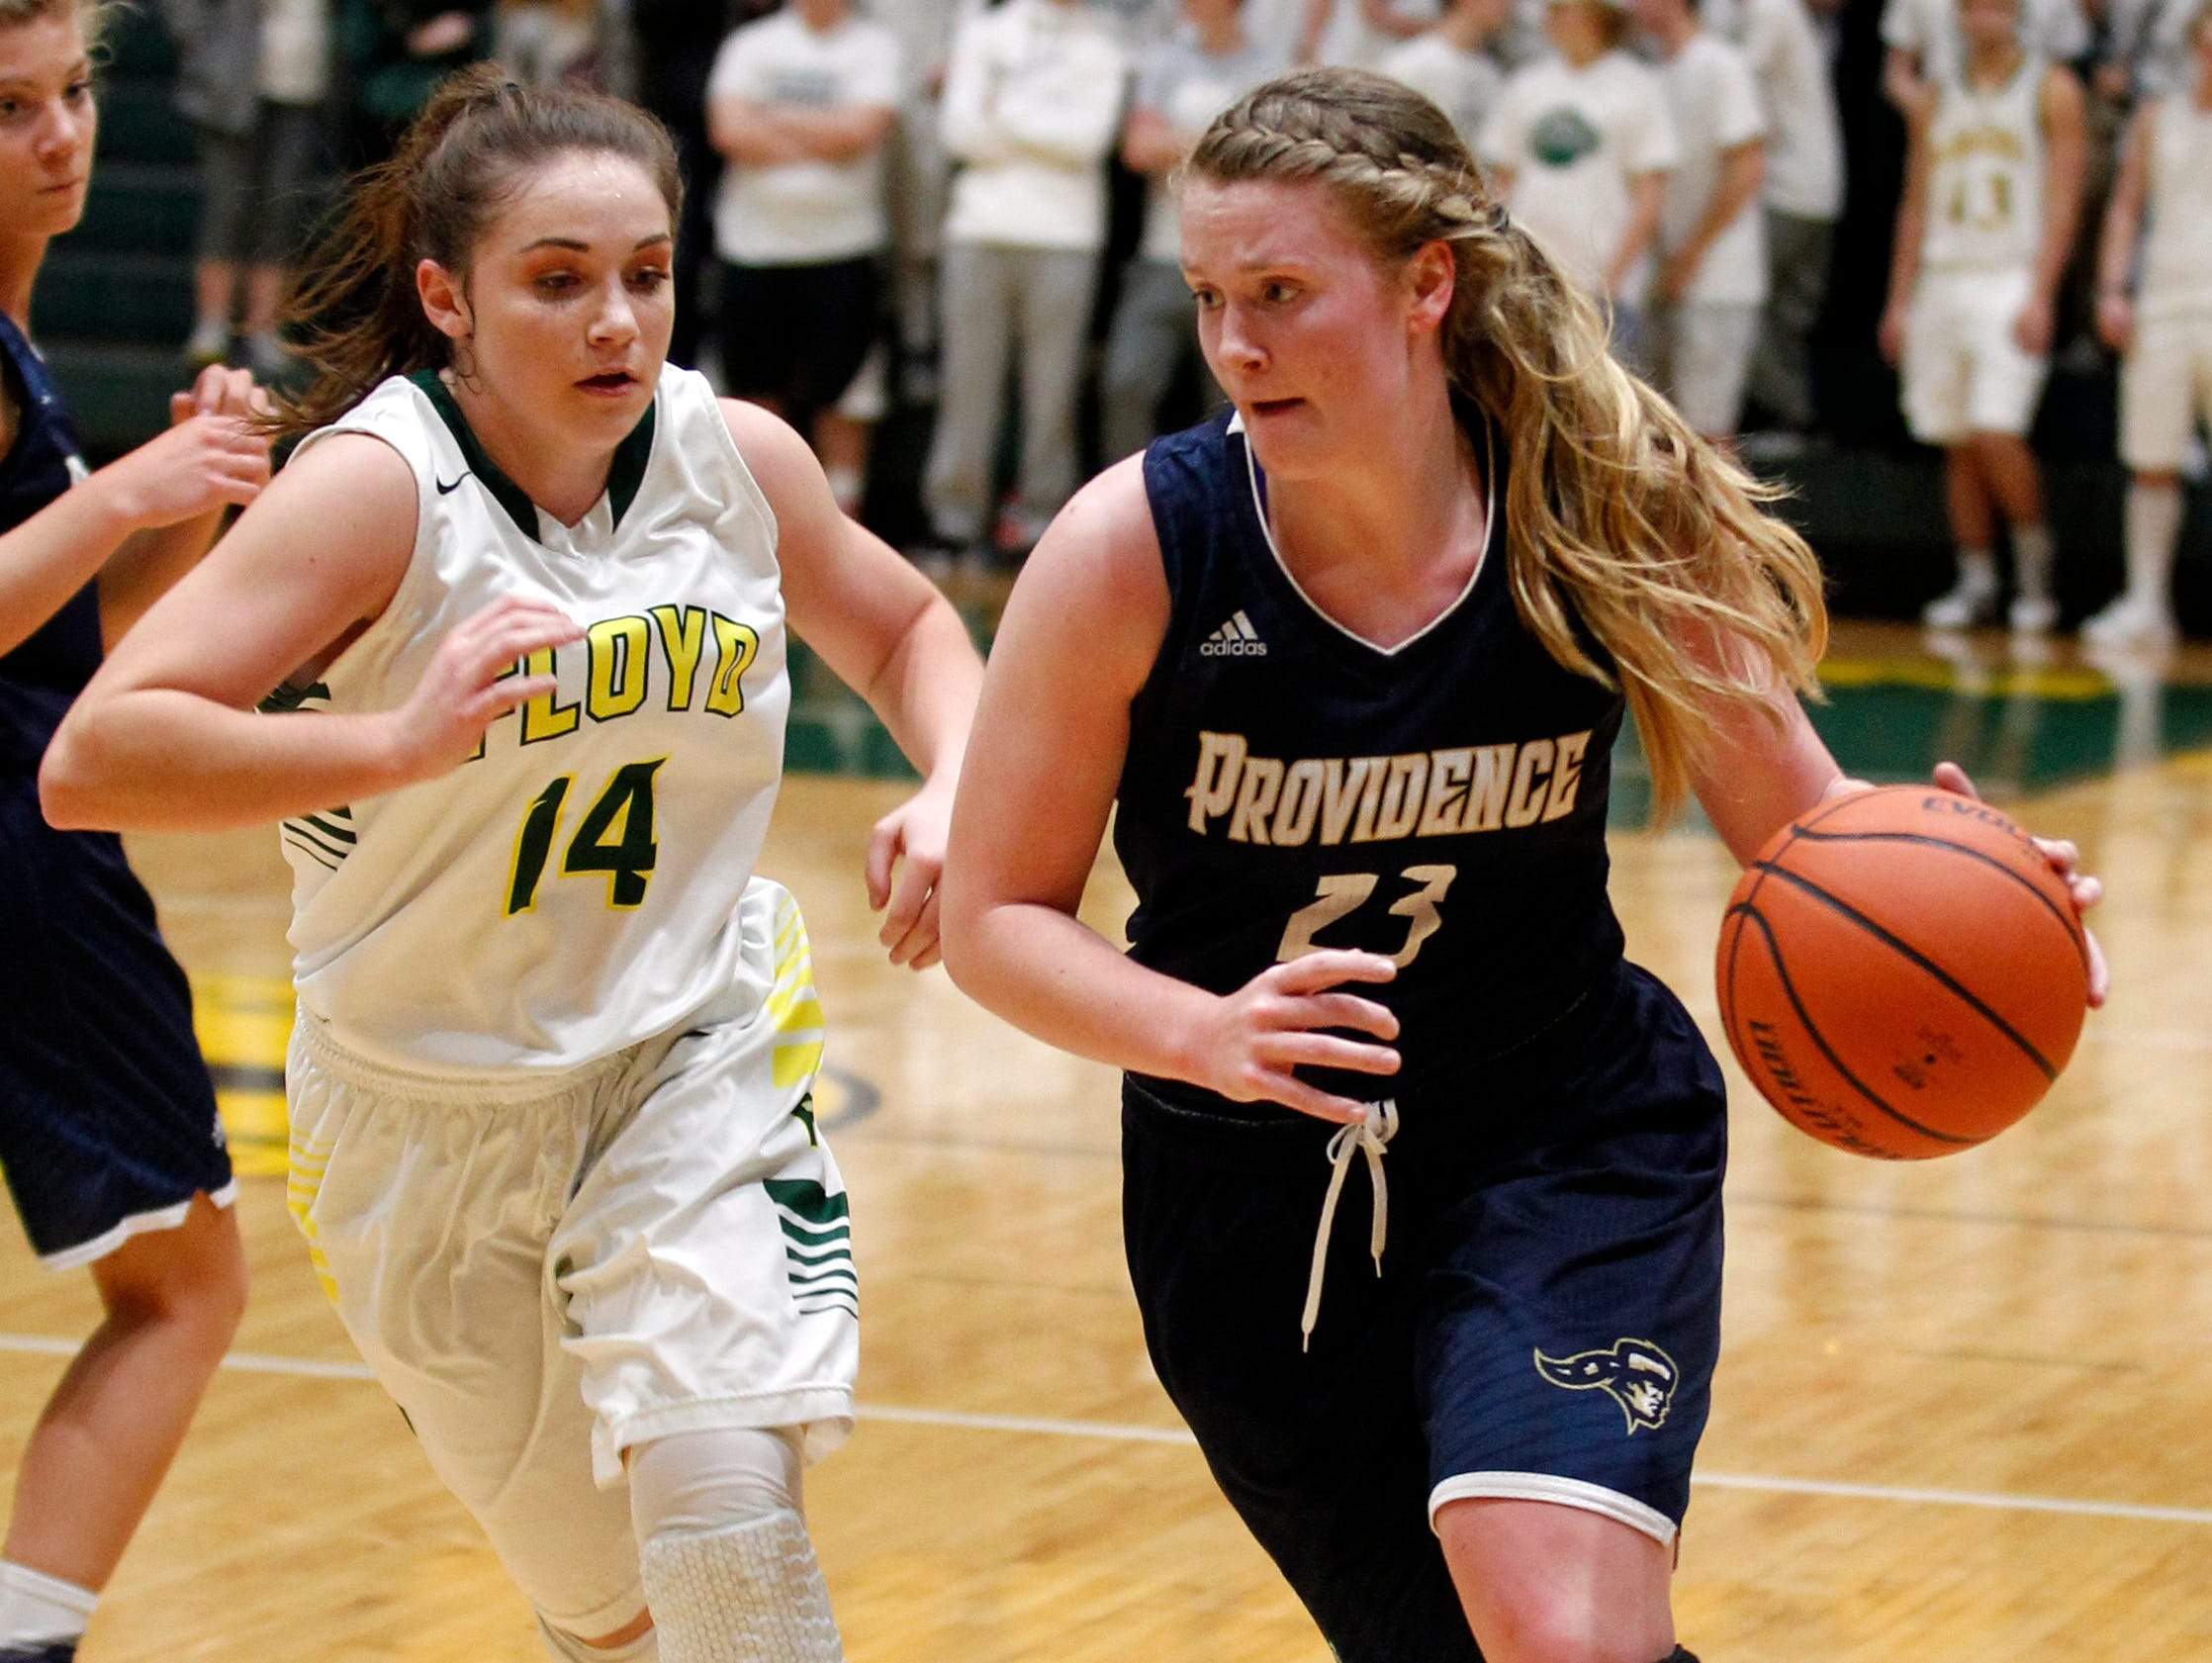 Providence High School's Claire Rauck (23) fights pressure from Floyd Central High School's Lois Endris (14) during the first half of play at Floyd Central High School in Floyds Knobs, Indiana. January 26, 2017